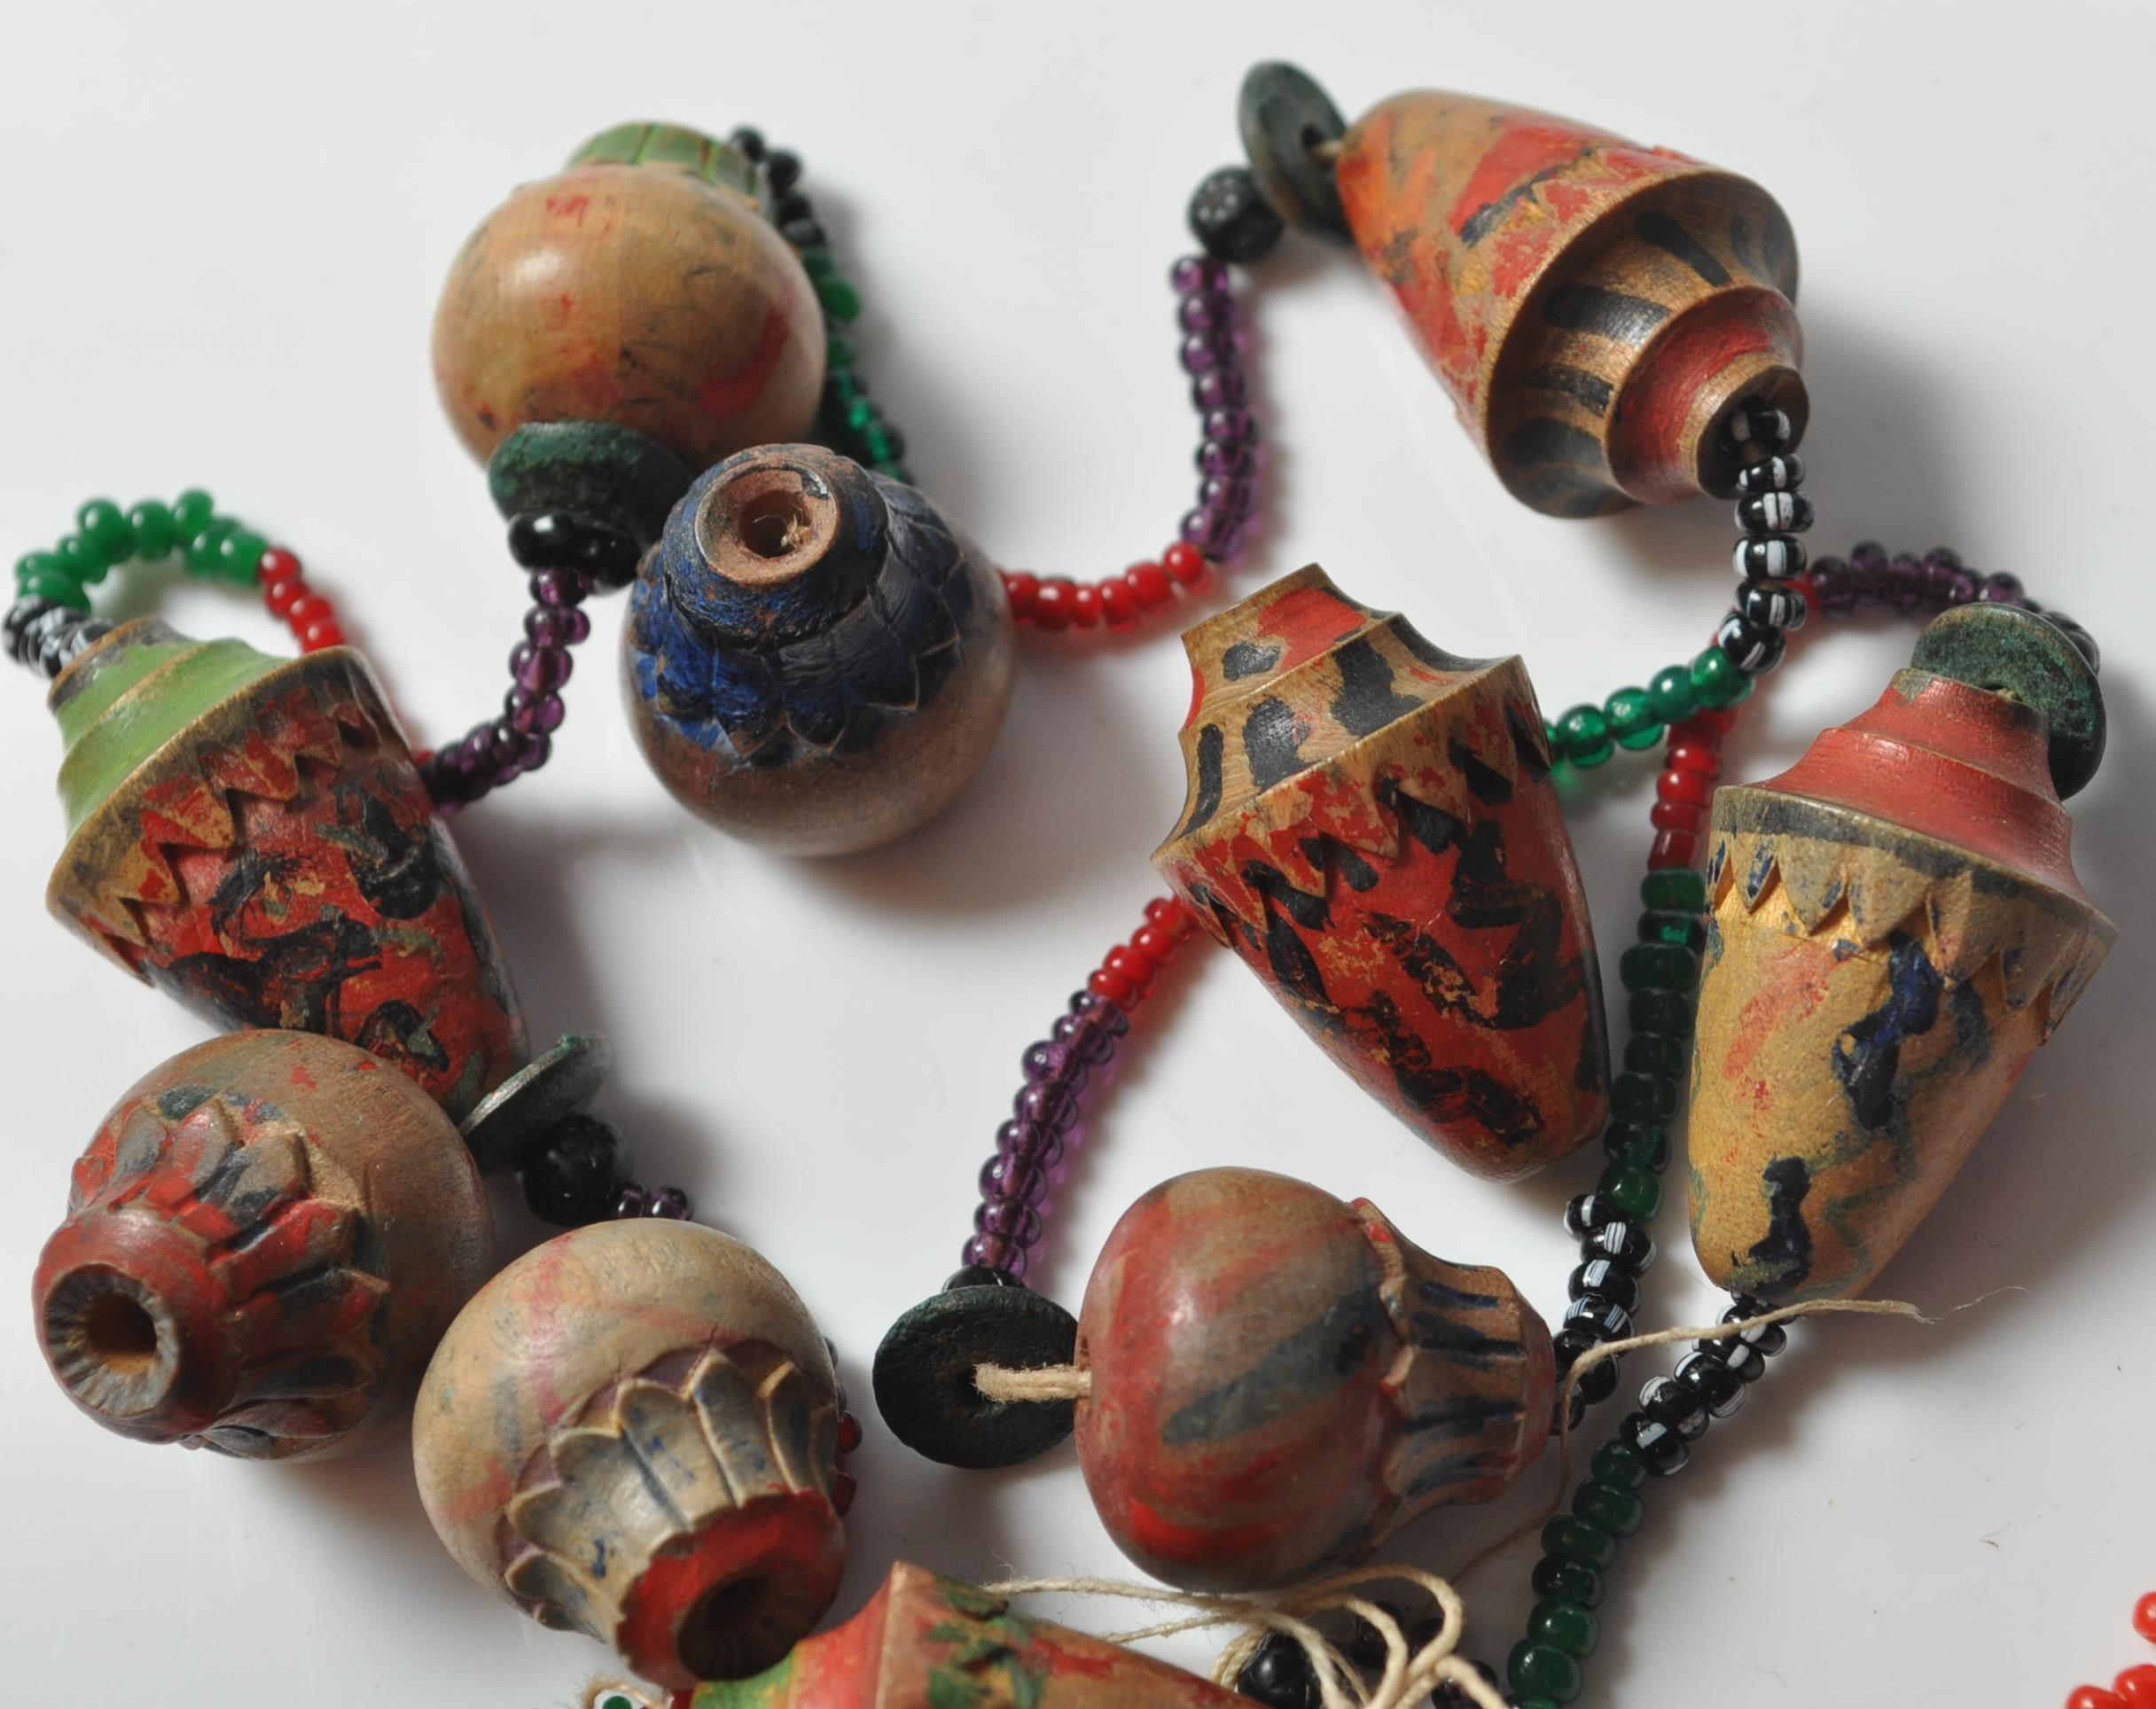 COLLECTION OF ZULU AFRICAN AND NATIVE AMERCIAN JEWELLERY. - Image 3 of 9